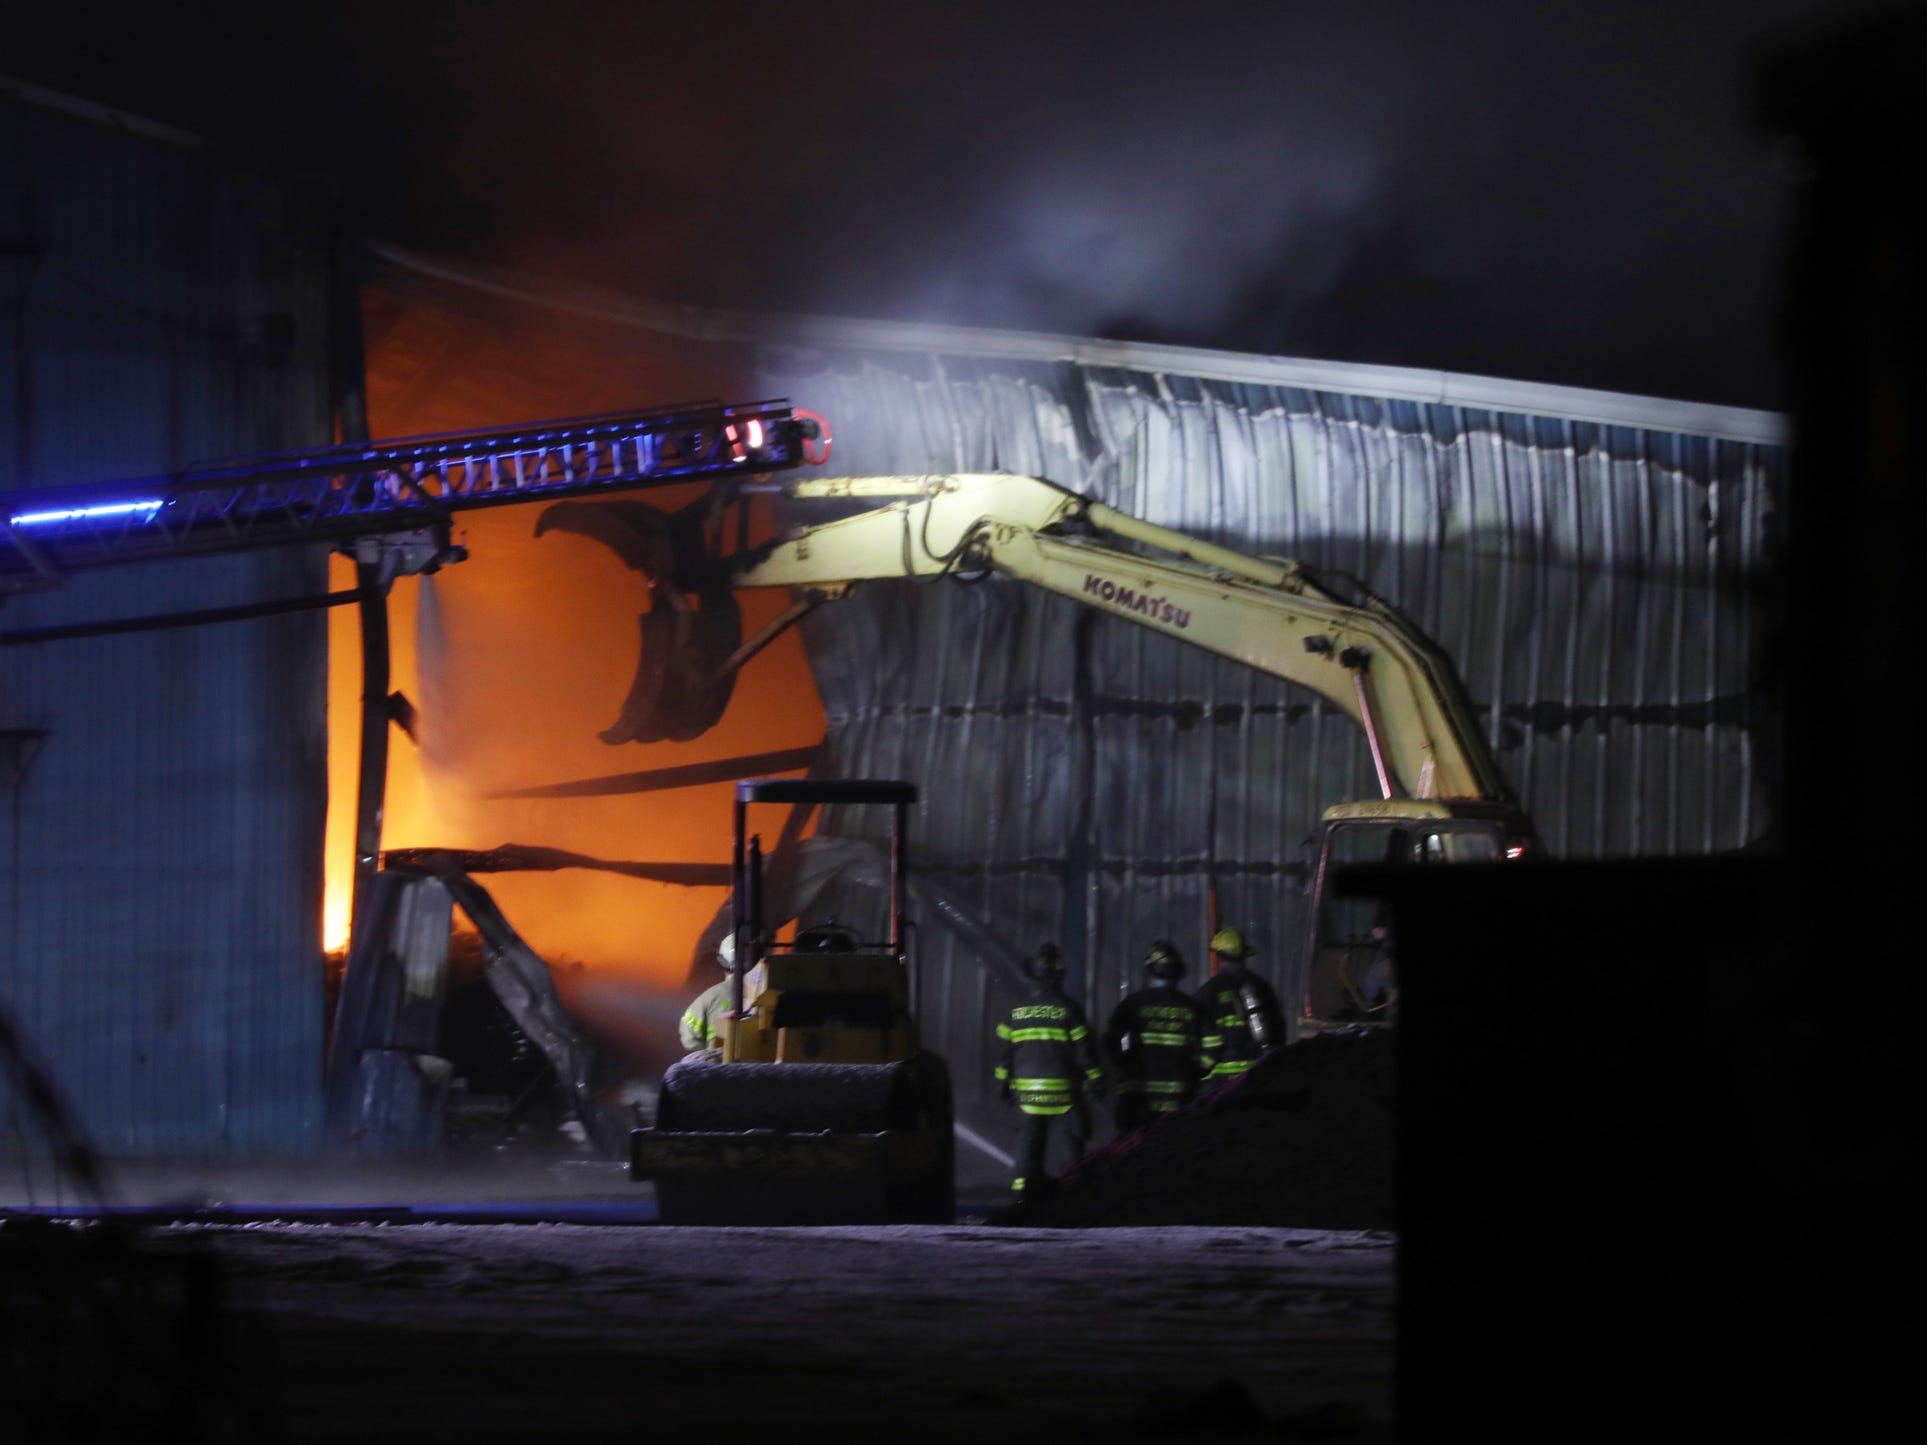 A backhoe was used to open up the building to get at the fire.